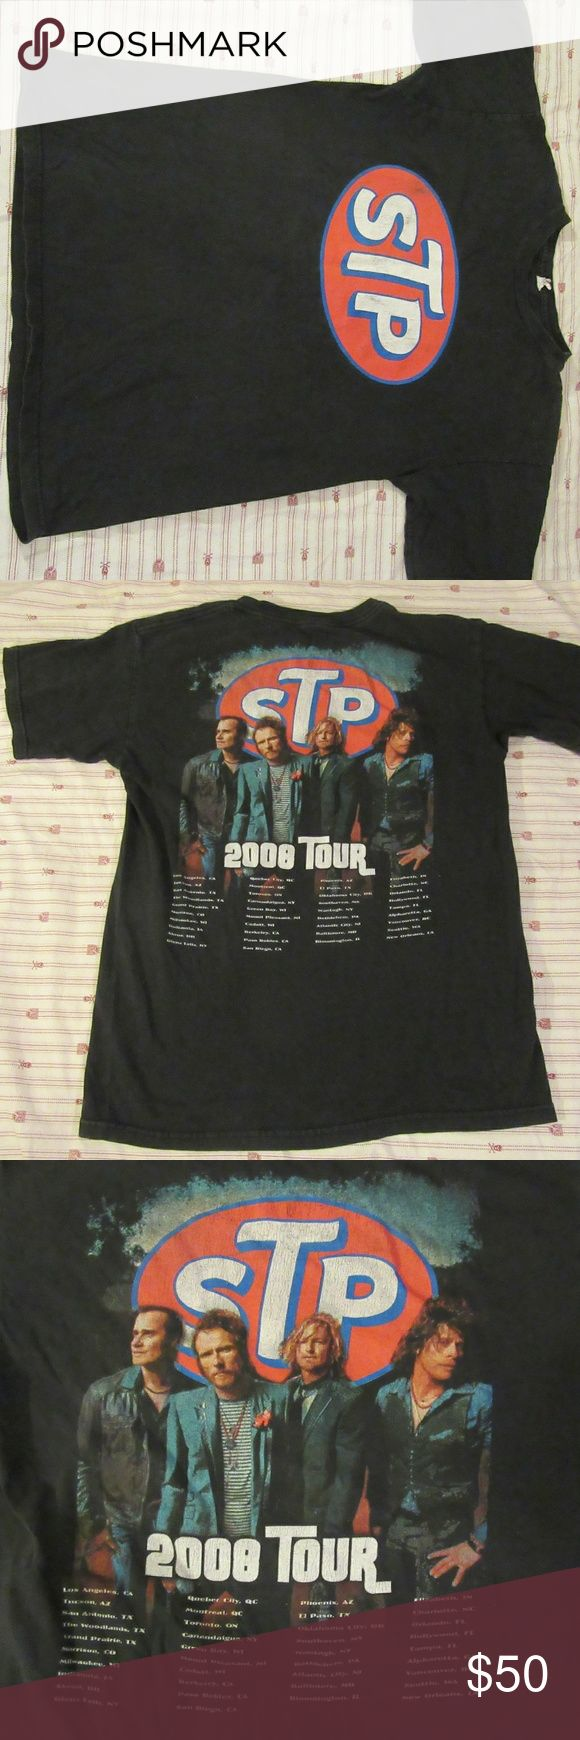 stone temple pilots Vntg TShirt TOUR Concert 2008 good shape: shows wear and tag is destroyed  stone temple pilots Vntg TShirt TOUR Concert 2008 S  pit to pit 18  shoulder to shoulder 17  top to bottom 24.5 Shirts Tees - Short Sleeve